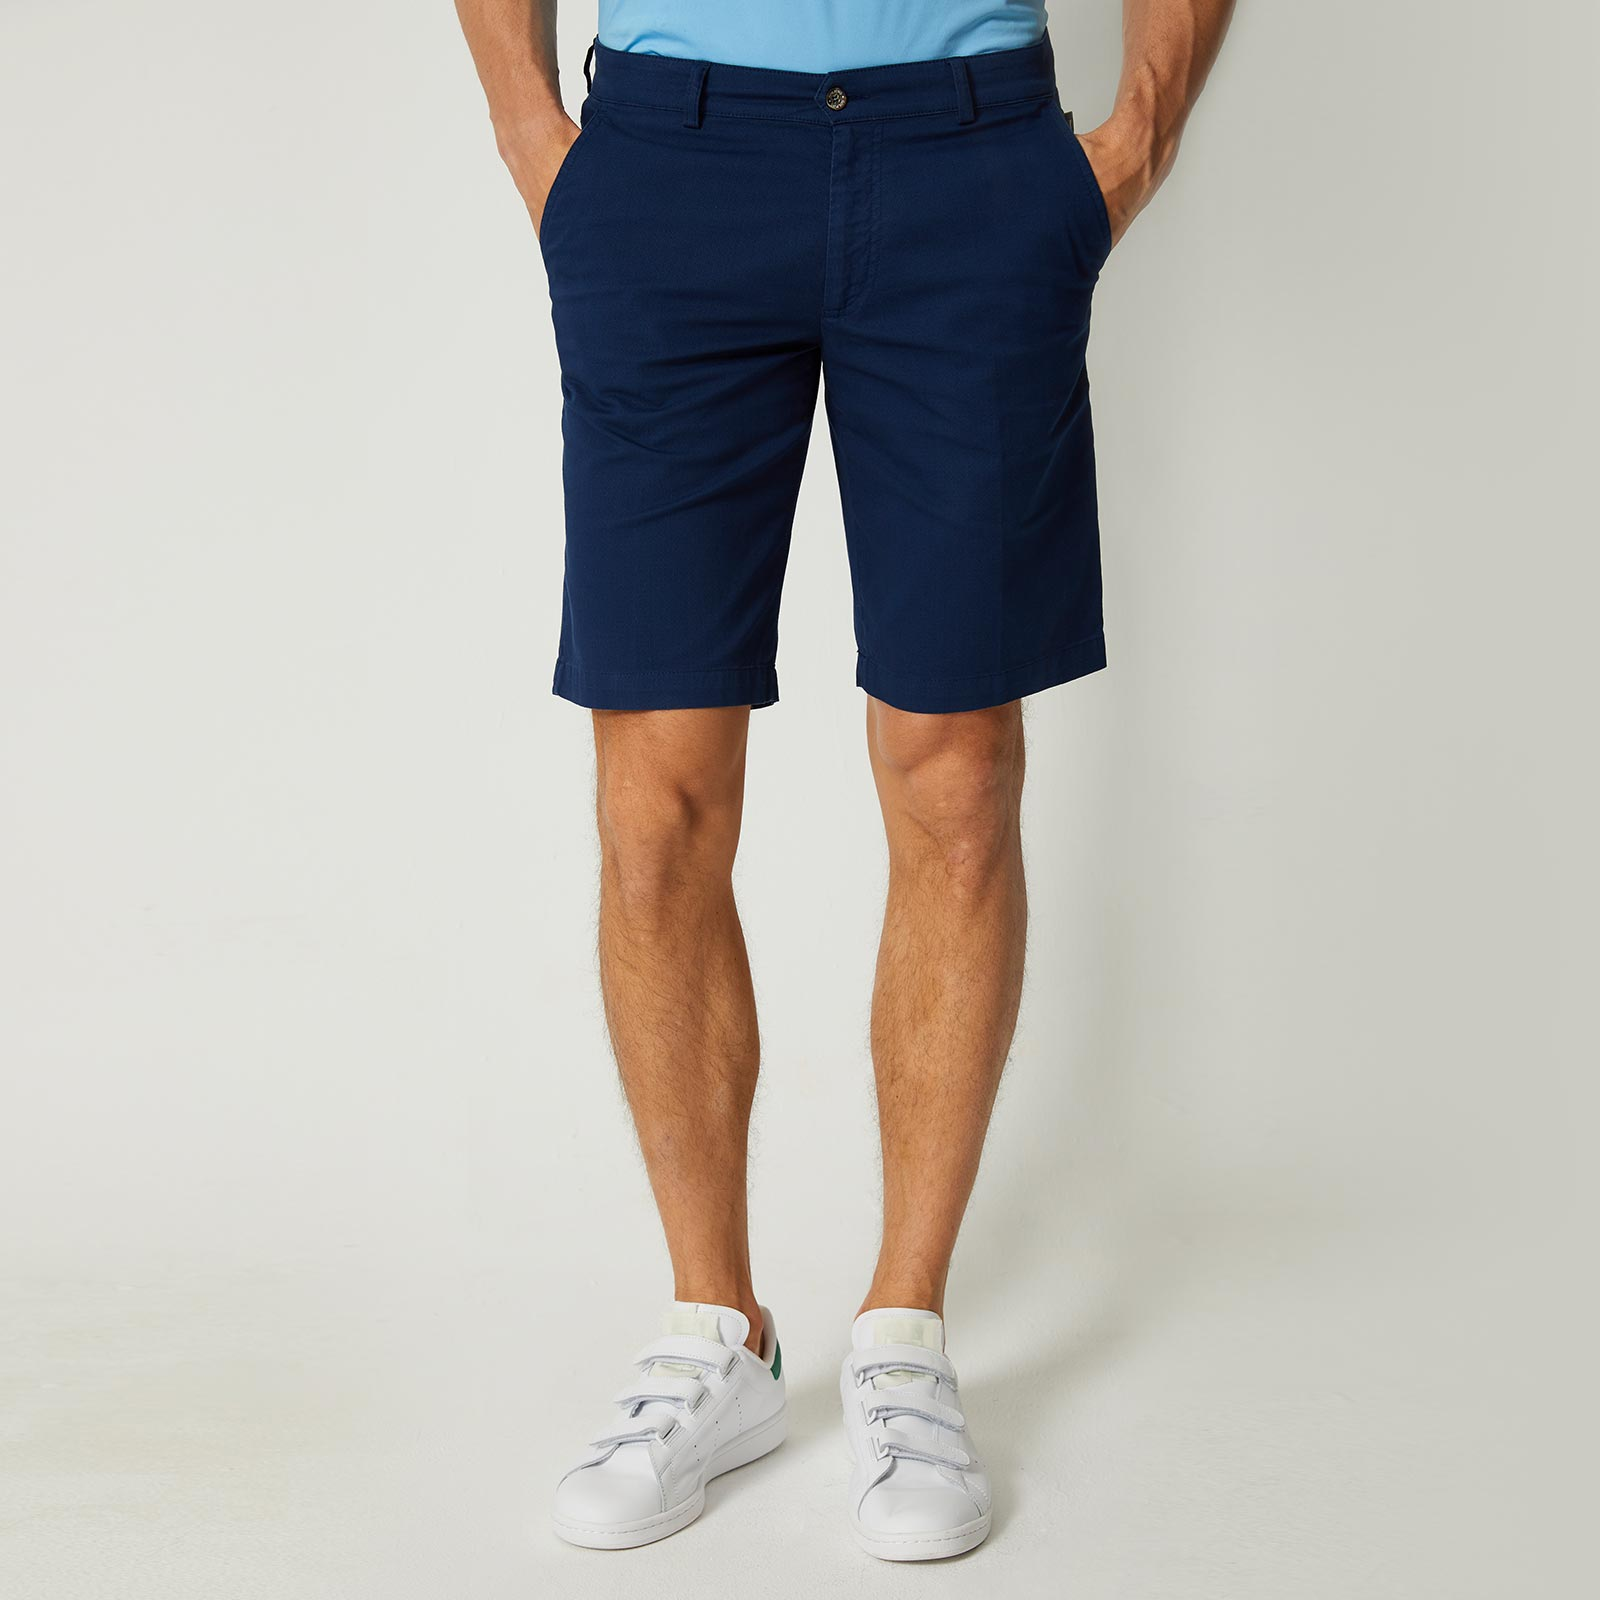 Herren Baumwoll-Golfbermuda in Regular Fit